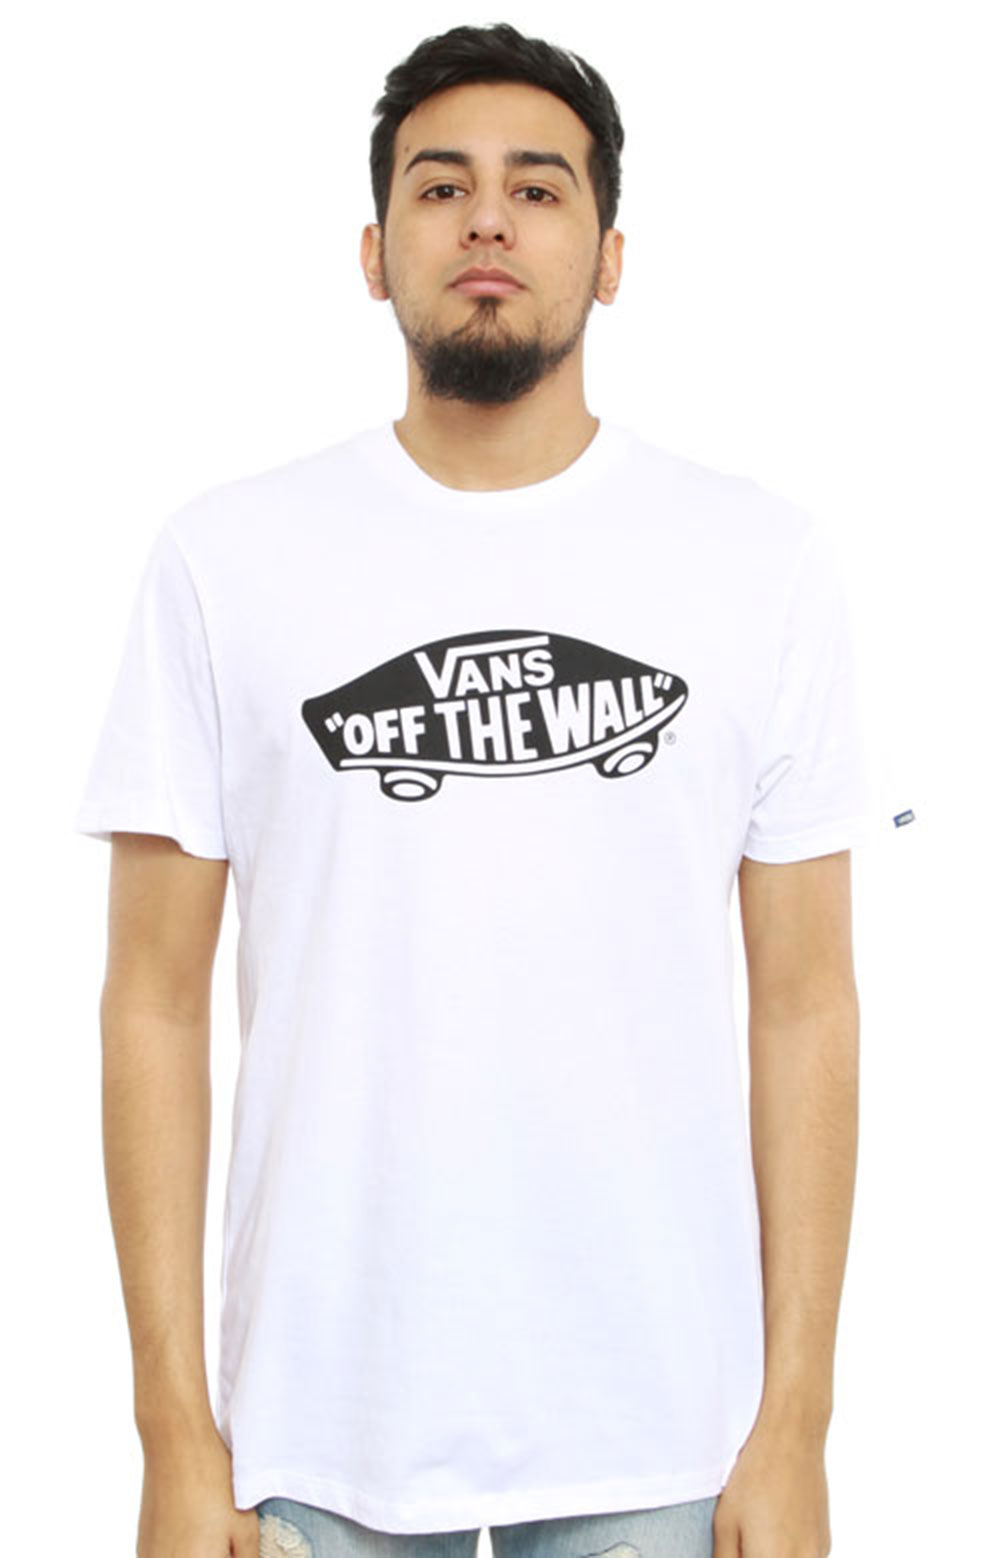 77323 Vans OTW T-Shirt - White/Black